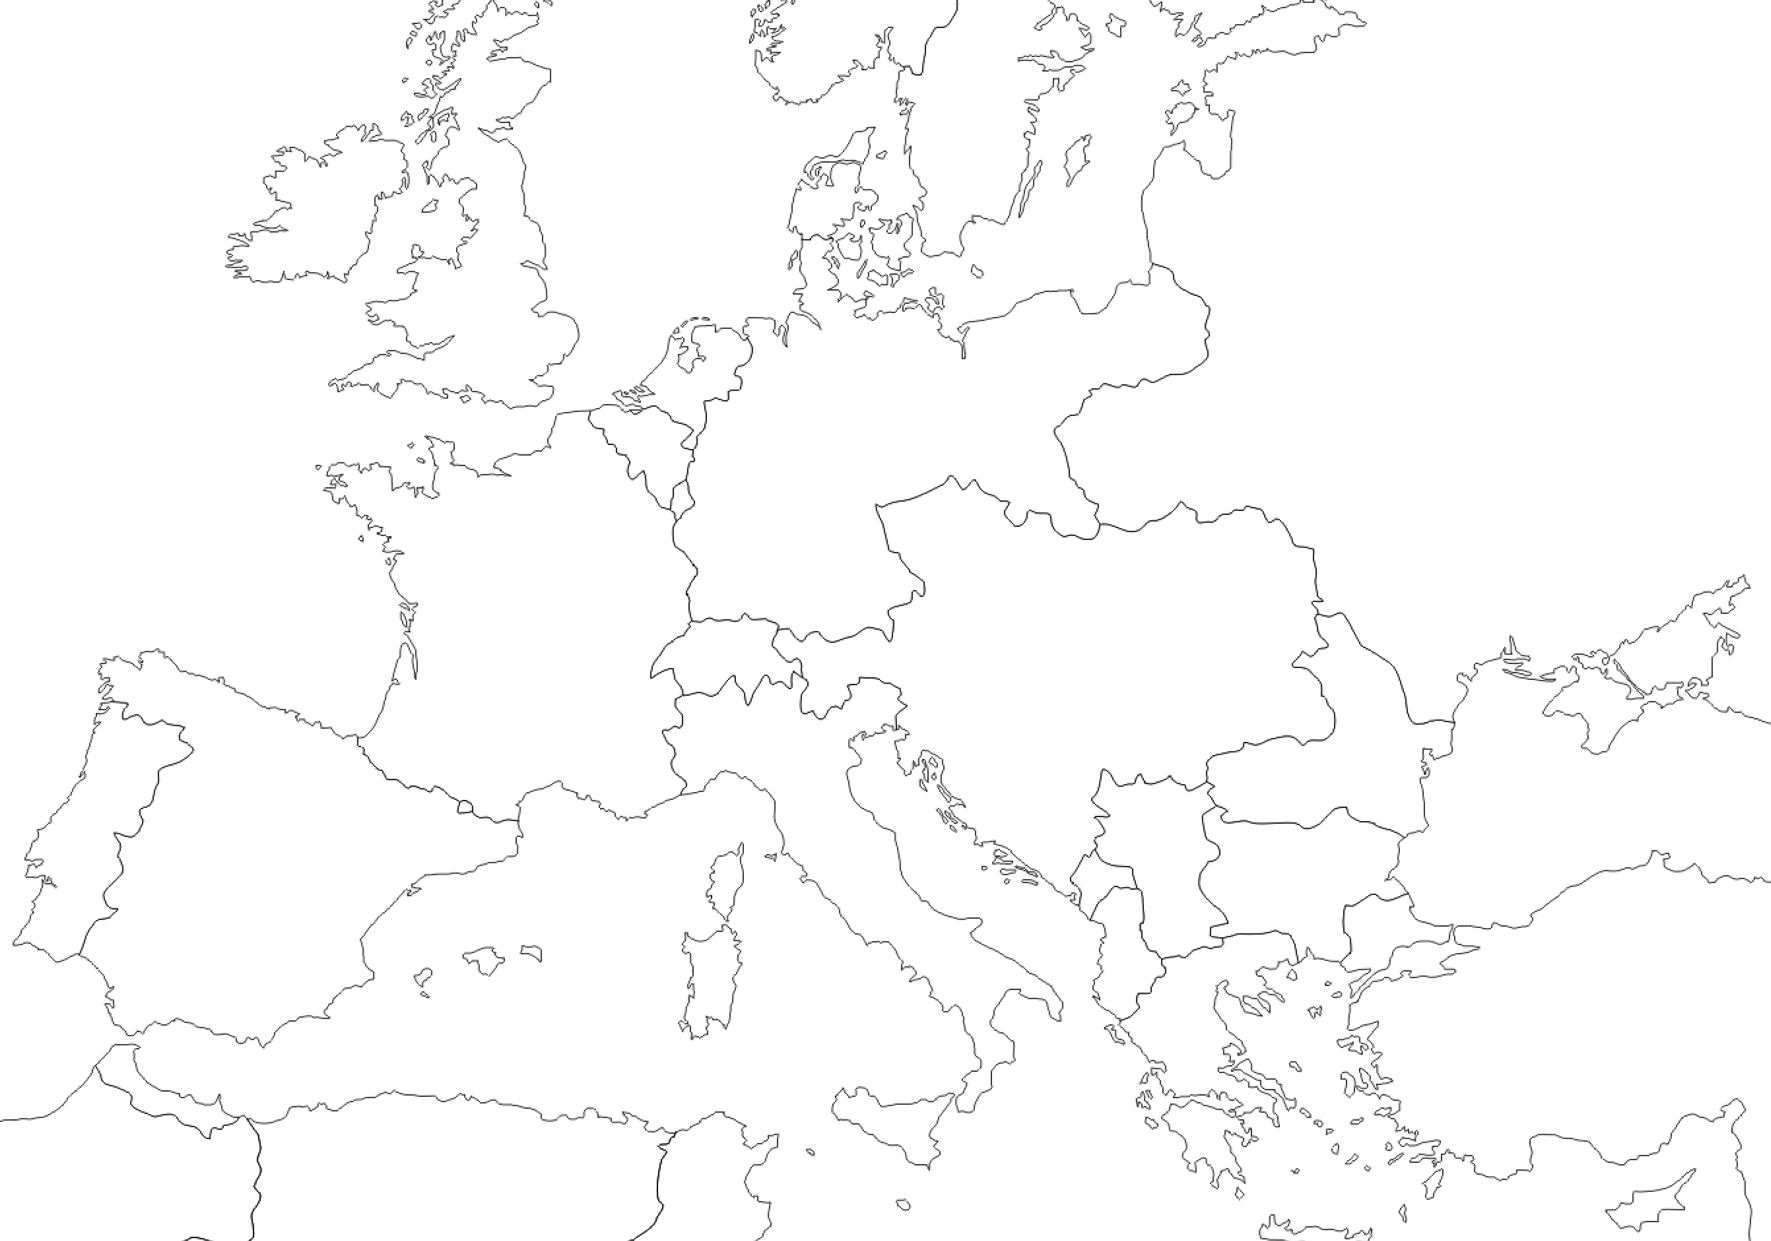 1914 - Outline map of Europe | WWI | Europe 1914, Free maps, Map